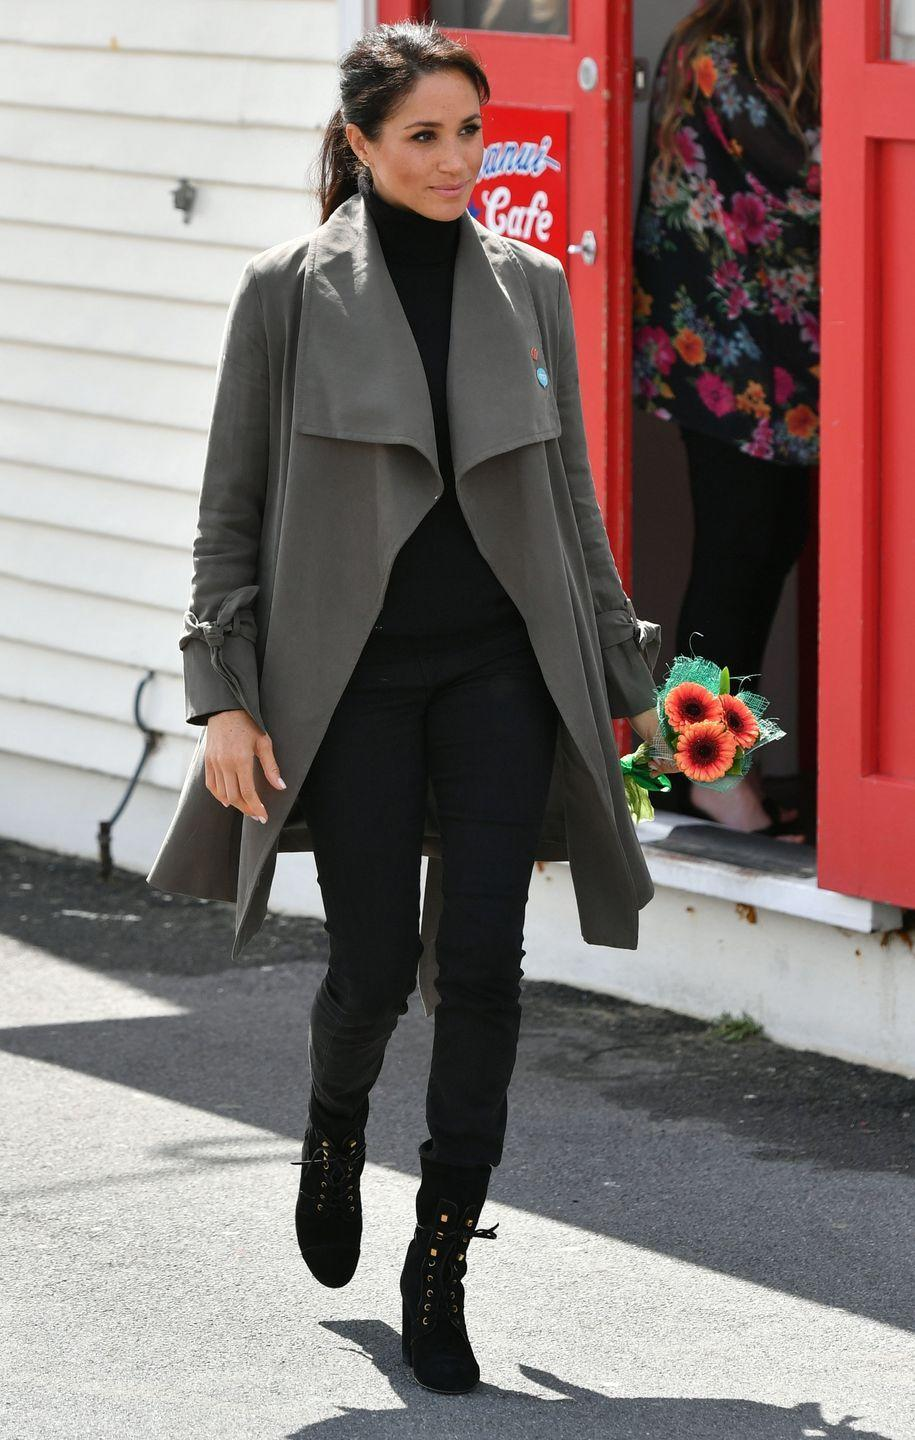 """<p>Harry and Meghan met with a young New Zealanders to discuss mental health while in Wellington. For the daytime outing, the Duchess wore Club Monaco's Ellayne Trench over a sweater by Jac + Jack with <a href=""""https://outlanddenim.ca/products/harriet-in-black-1?variant=12431424815201"""" rel=""""nofollow noopener"""" target=""""_blank"""" data-ylk=""""slk:Outland Denim's Harriet jeans."""" class=""""link rapid-noclick-resp"""">Outland Denim's Harriet jeans.</a> Meghan also wore lace-up boots by Stuart Weitzman</p><p><a class=""""link rapid-noclick-resp"""" href=""""https://go.redirectingat.com?id=74968X1596630&url=https%3A%2F%2Fshop.nordstrom.com%2Fs%2Fstuart-weitzman-veruka-lace-up-boot-women%2F4900880&sref=https%3A%2F%2Fwww.townandcountrymag.com%2Fstyle%2Ffashion-trends%2Fg3272%2Fmeghan-markle-preppy-style%2F"""" rel=""""nofollow noopener"""" target=""""_blank"""" data-ylk=""""slk:SHOP NOW"""">SHOP NOW </a><em>Veruka Lace-Up Boot by Stuart Weitzman, $698</em></p>"""